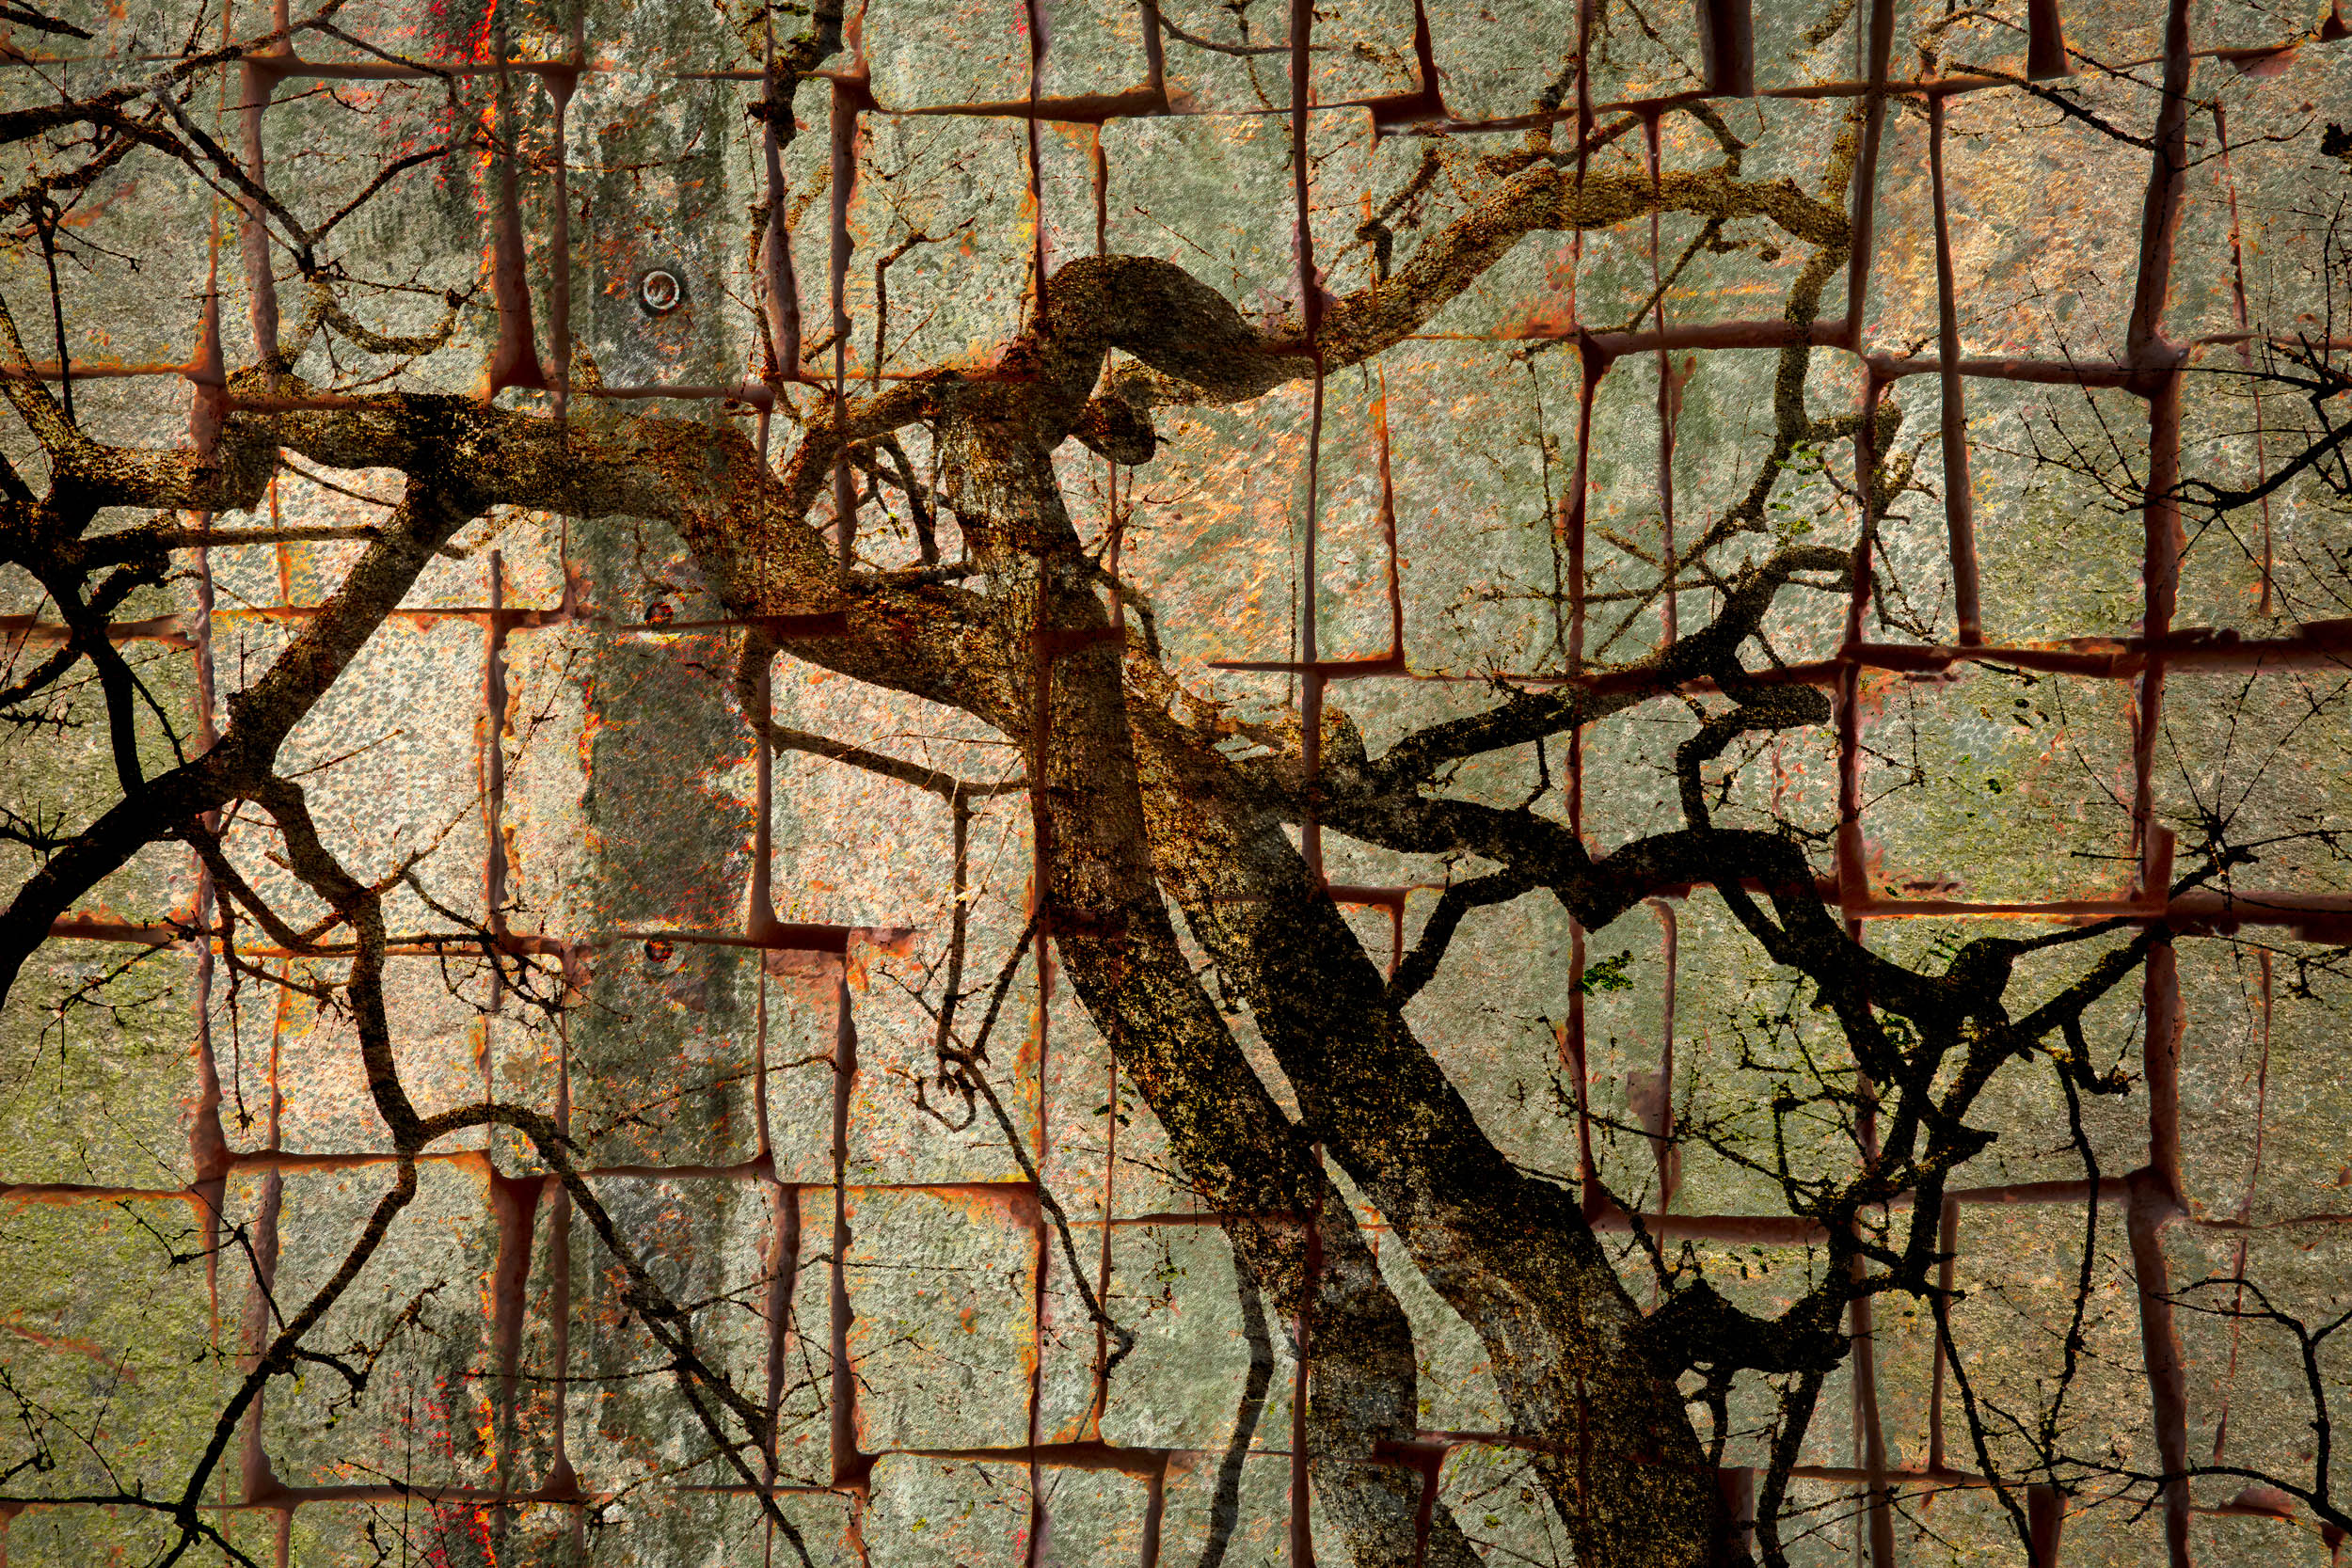 Ramas Torcidas VII / Twisted Branches VII